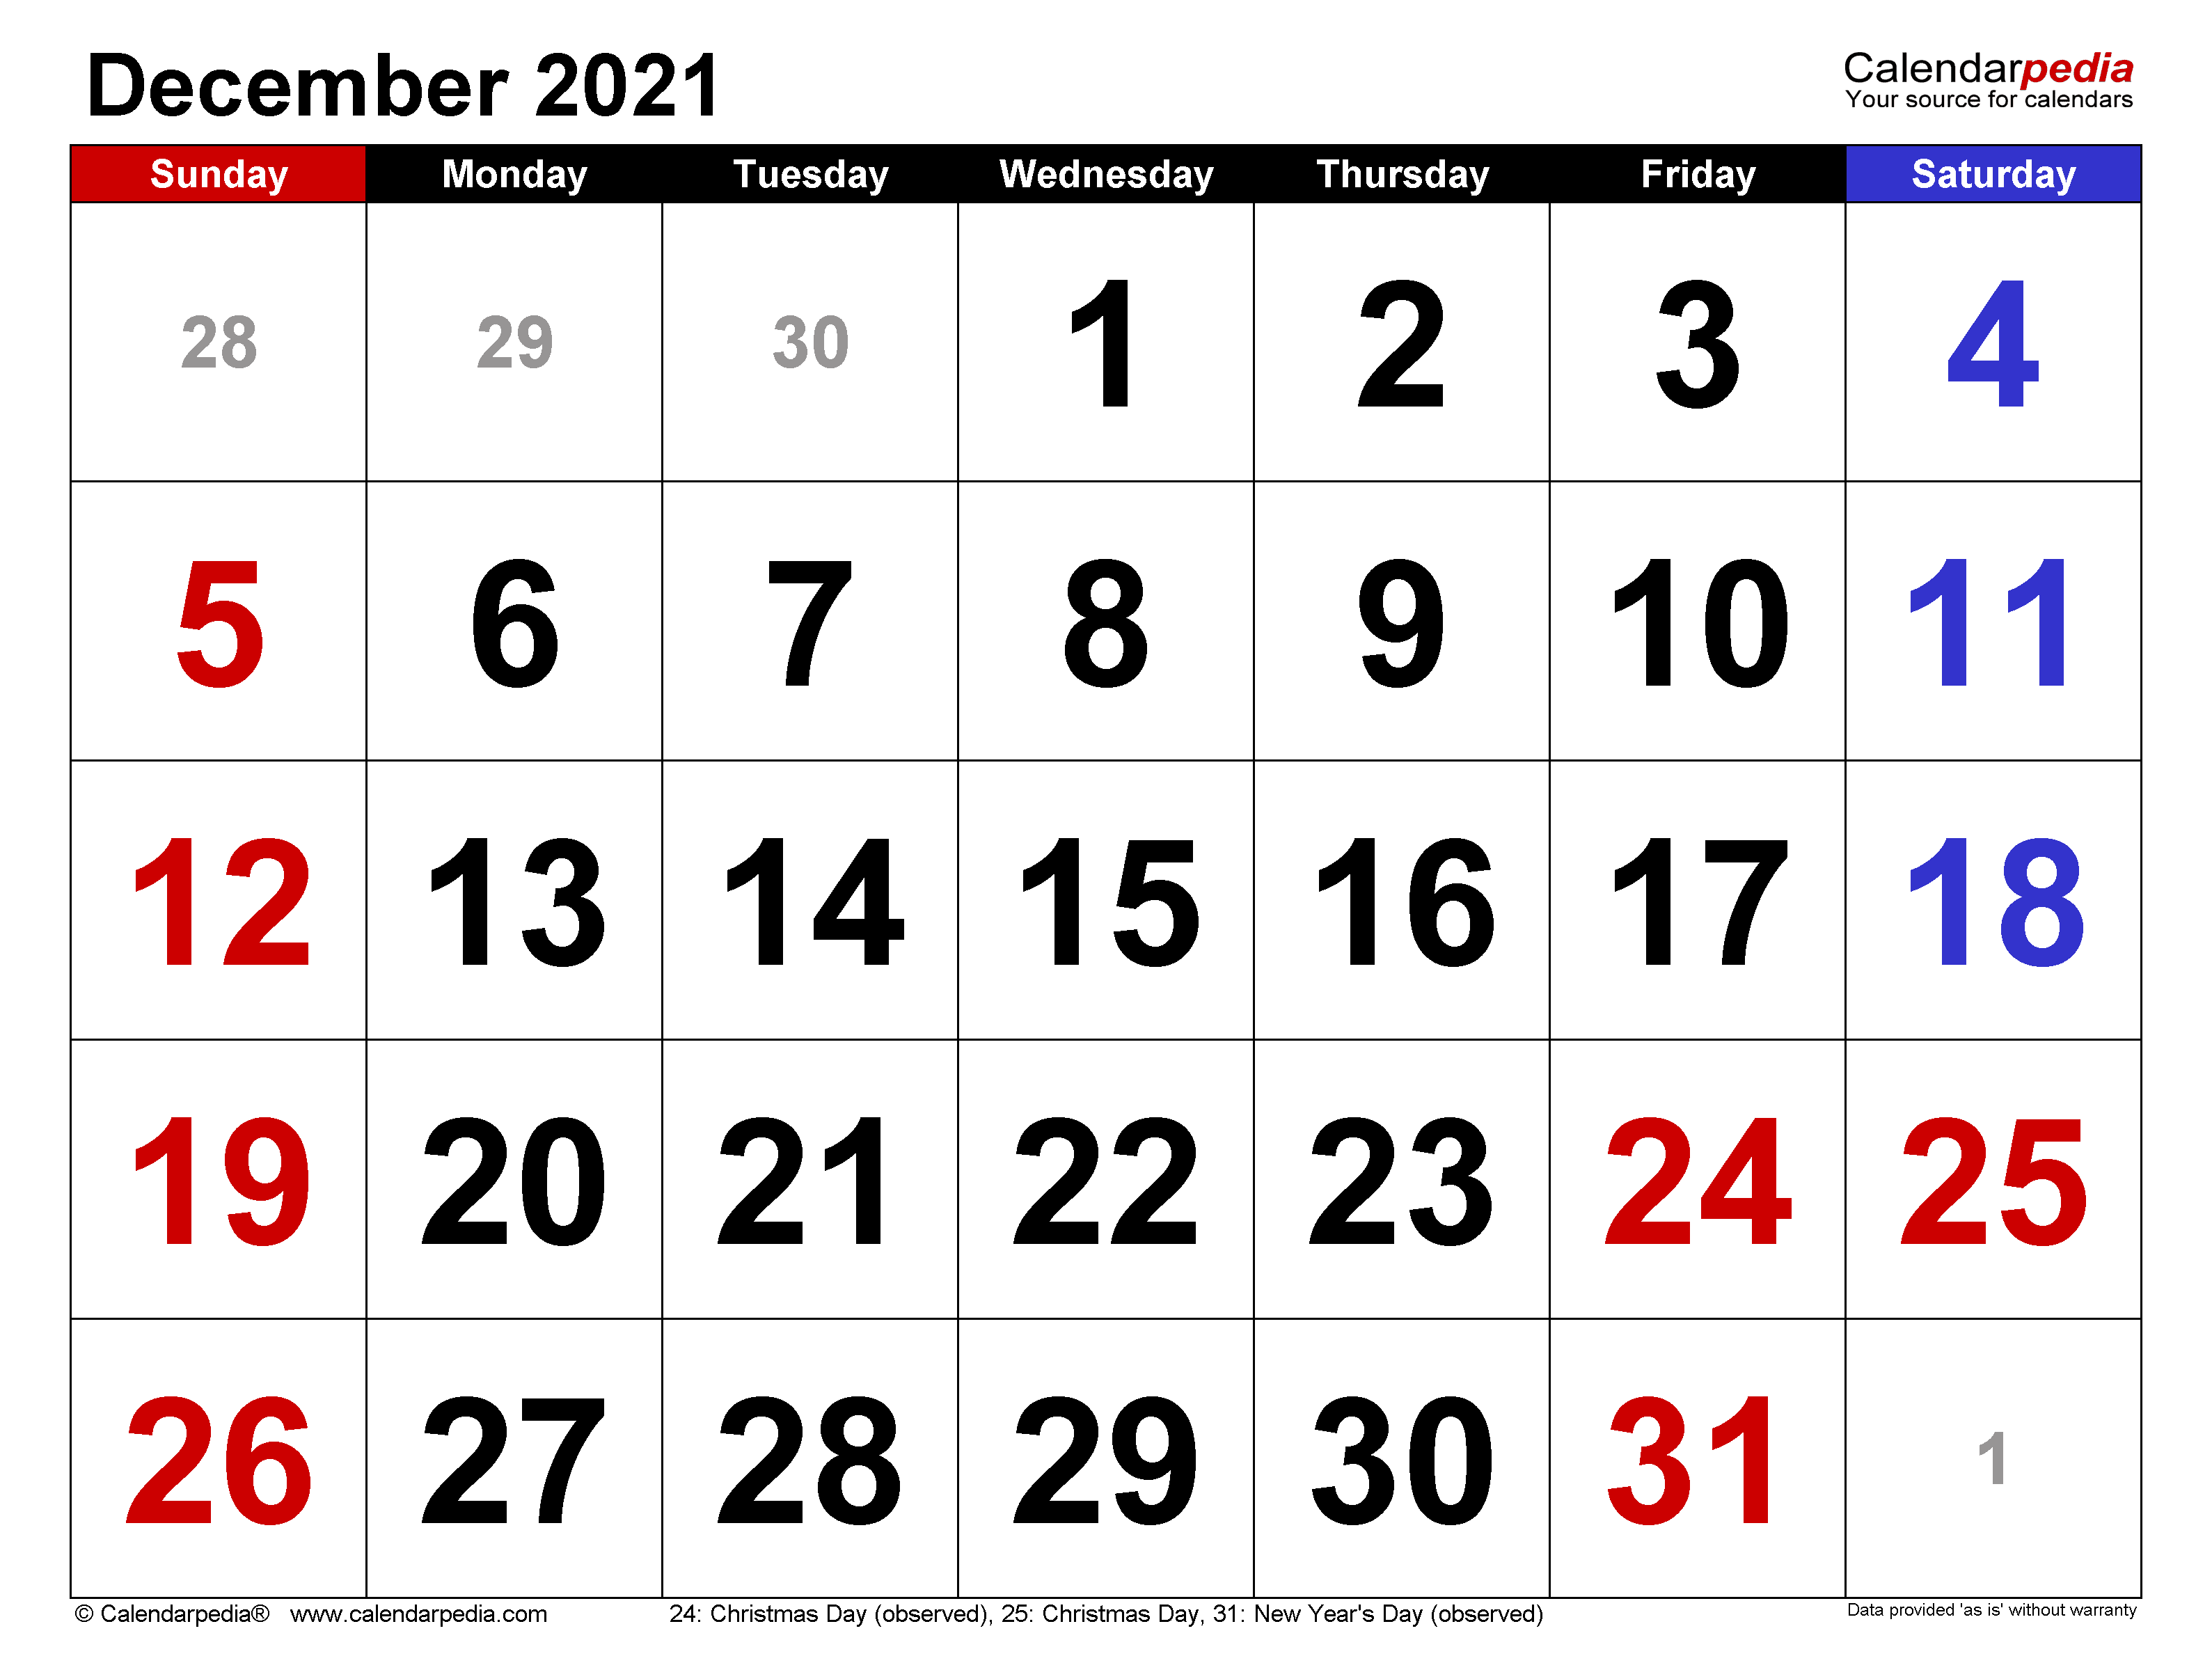 Calendar 2021 Dec December 2021 Calendar | Templates for Word, Excel and PDF